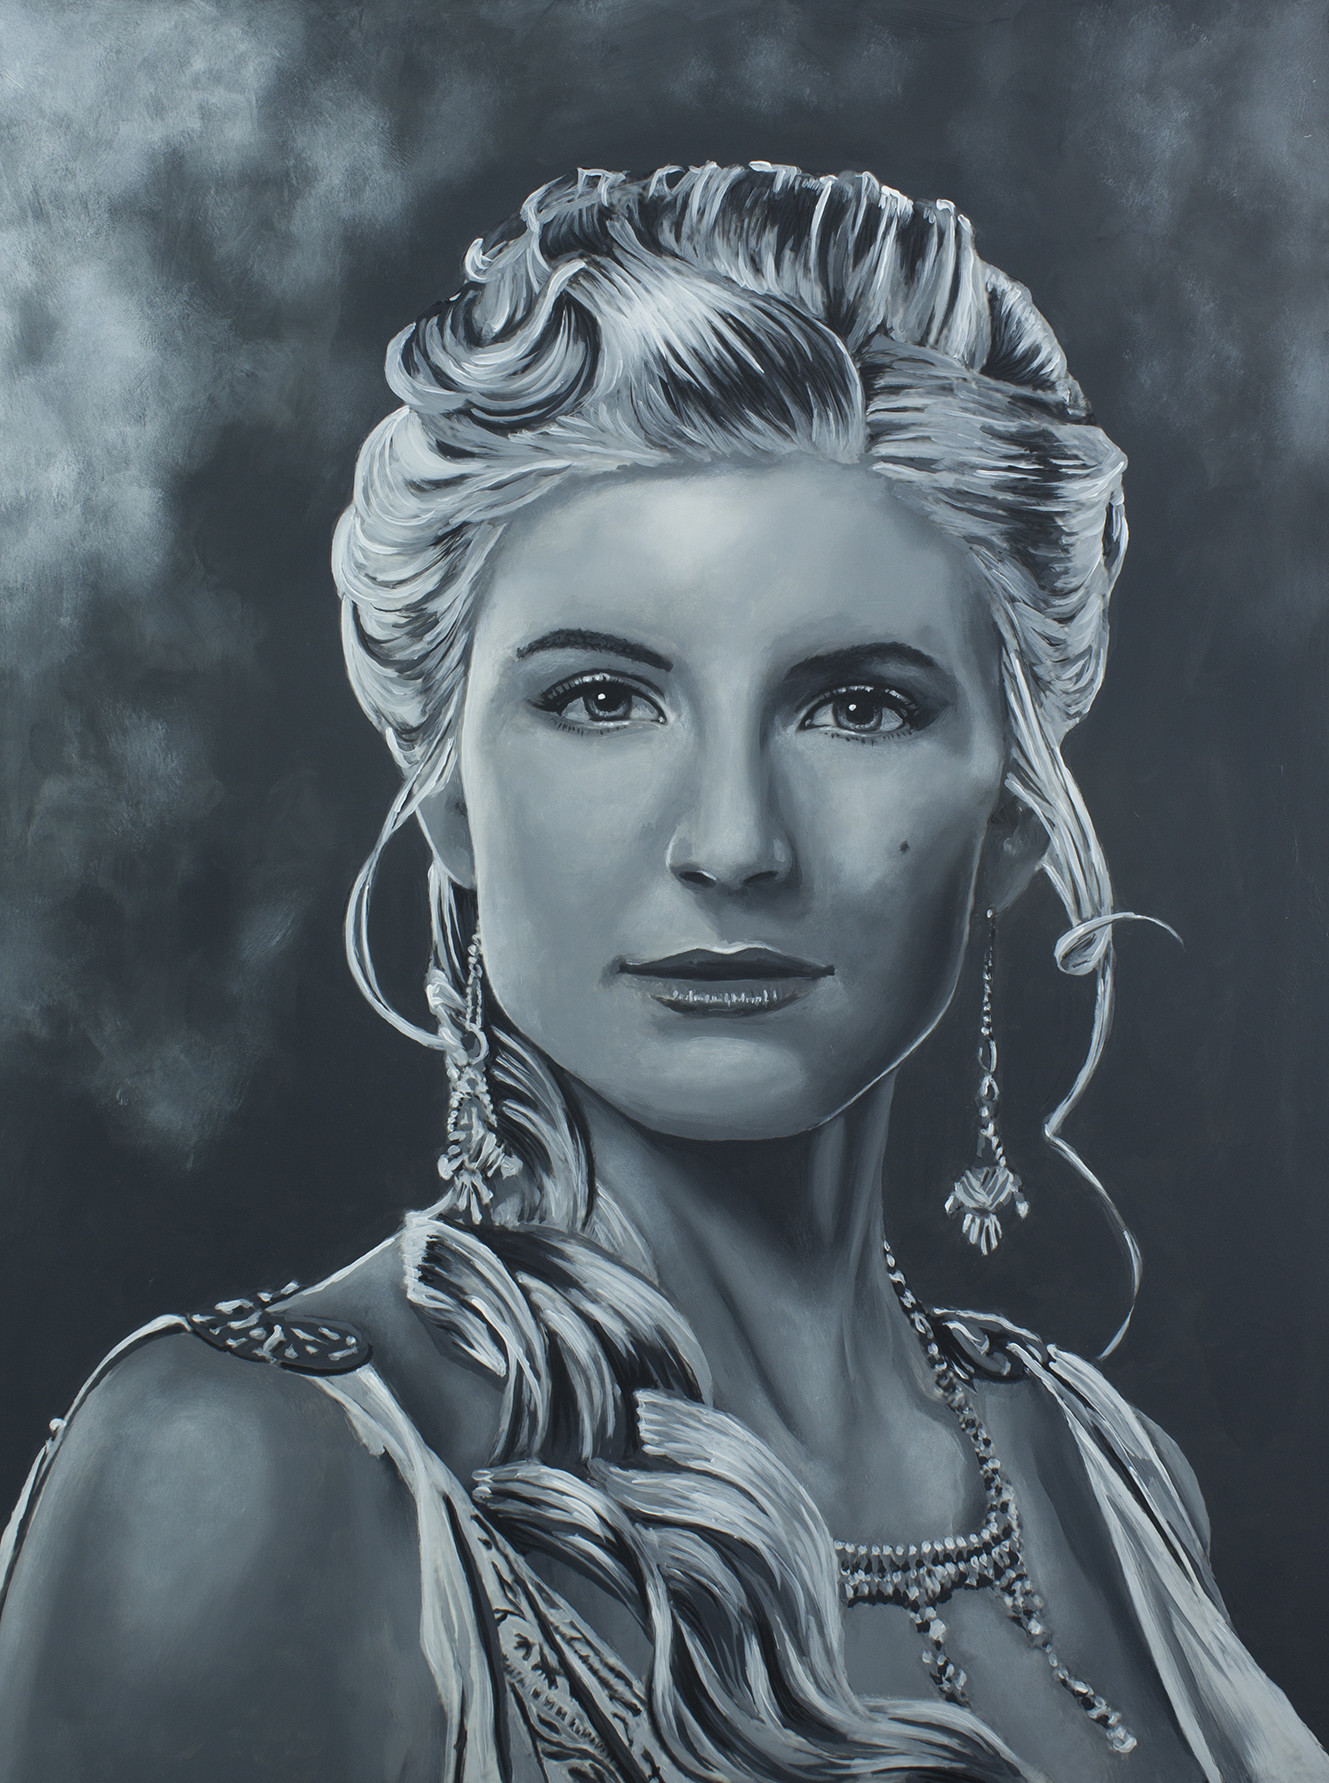 Ilythia - Viva Bianca